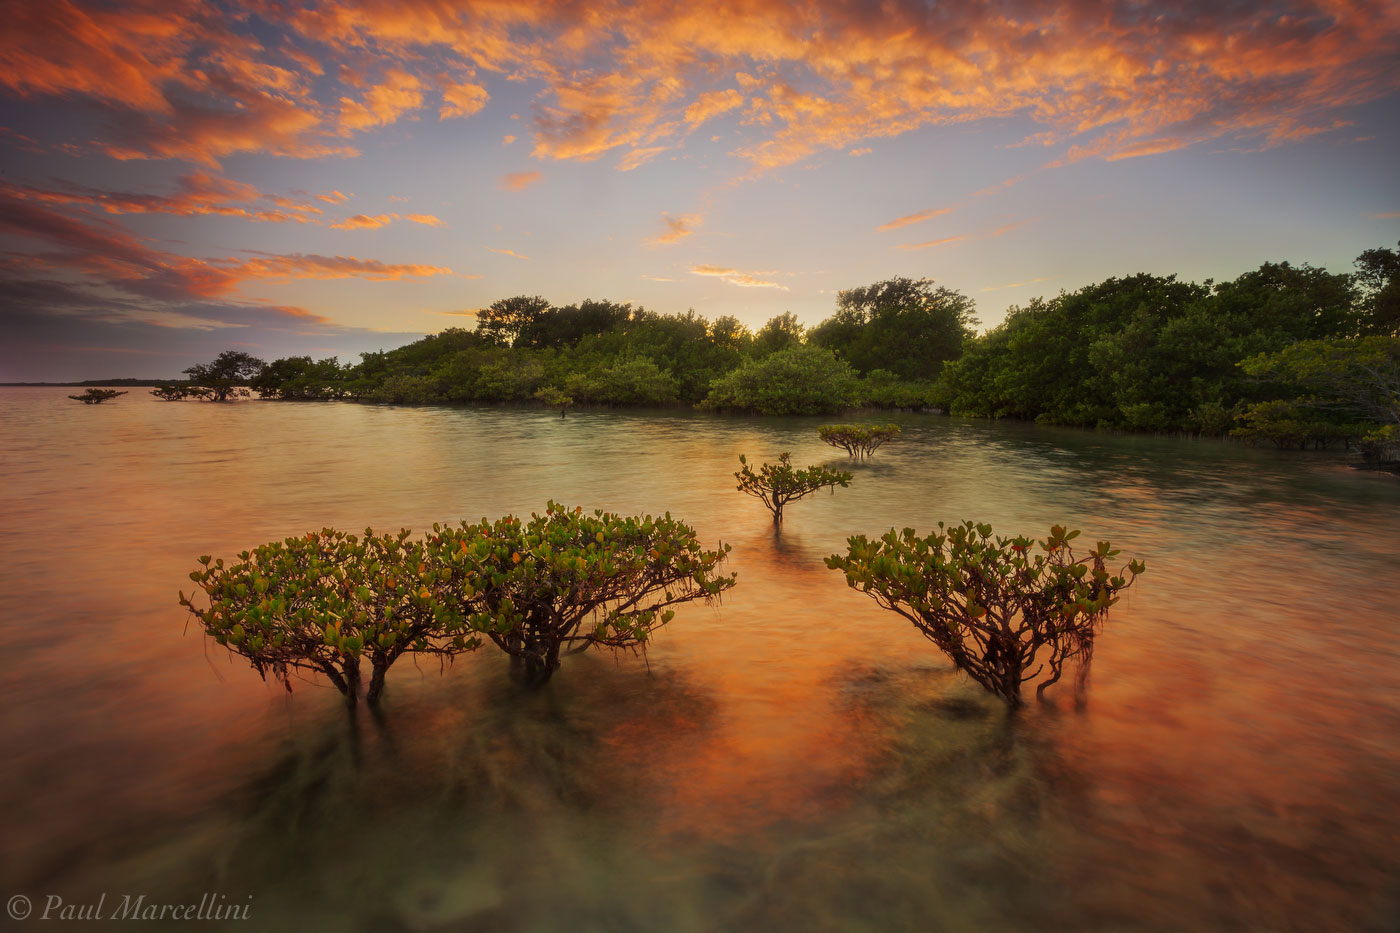 biscayne national park, mangroves, sunset, florida, nature, photography, photo